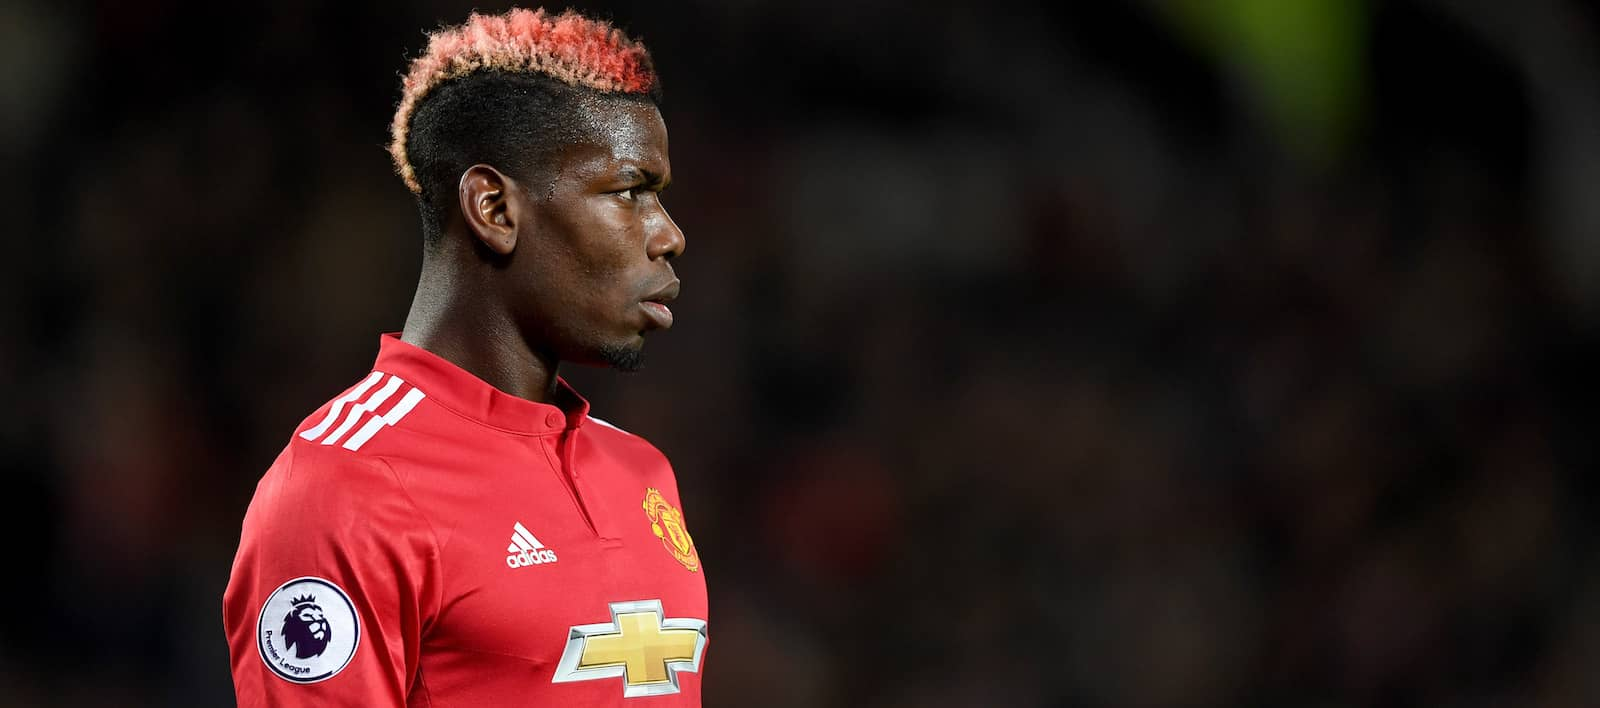 Paul Pogba must be freed to allow Manchester United to match Man City, claims Ryan Giggs